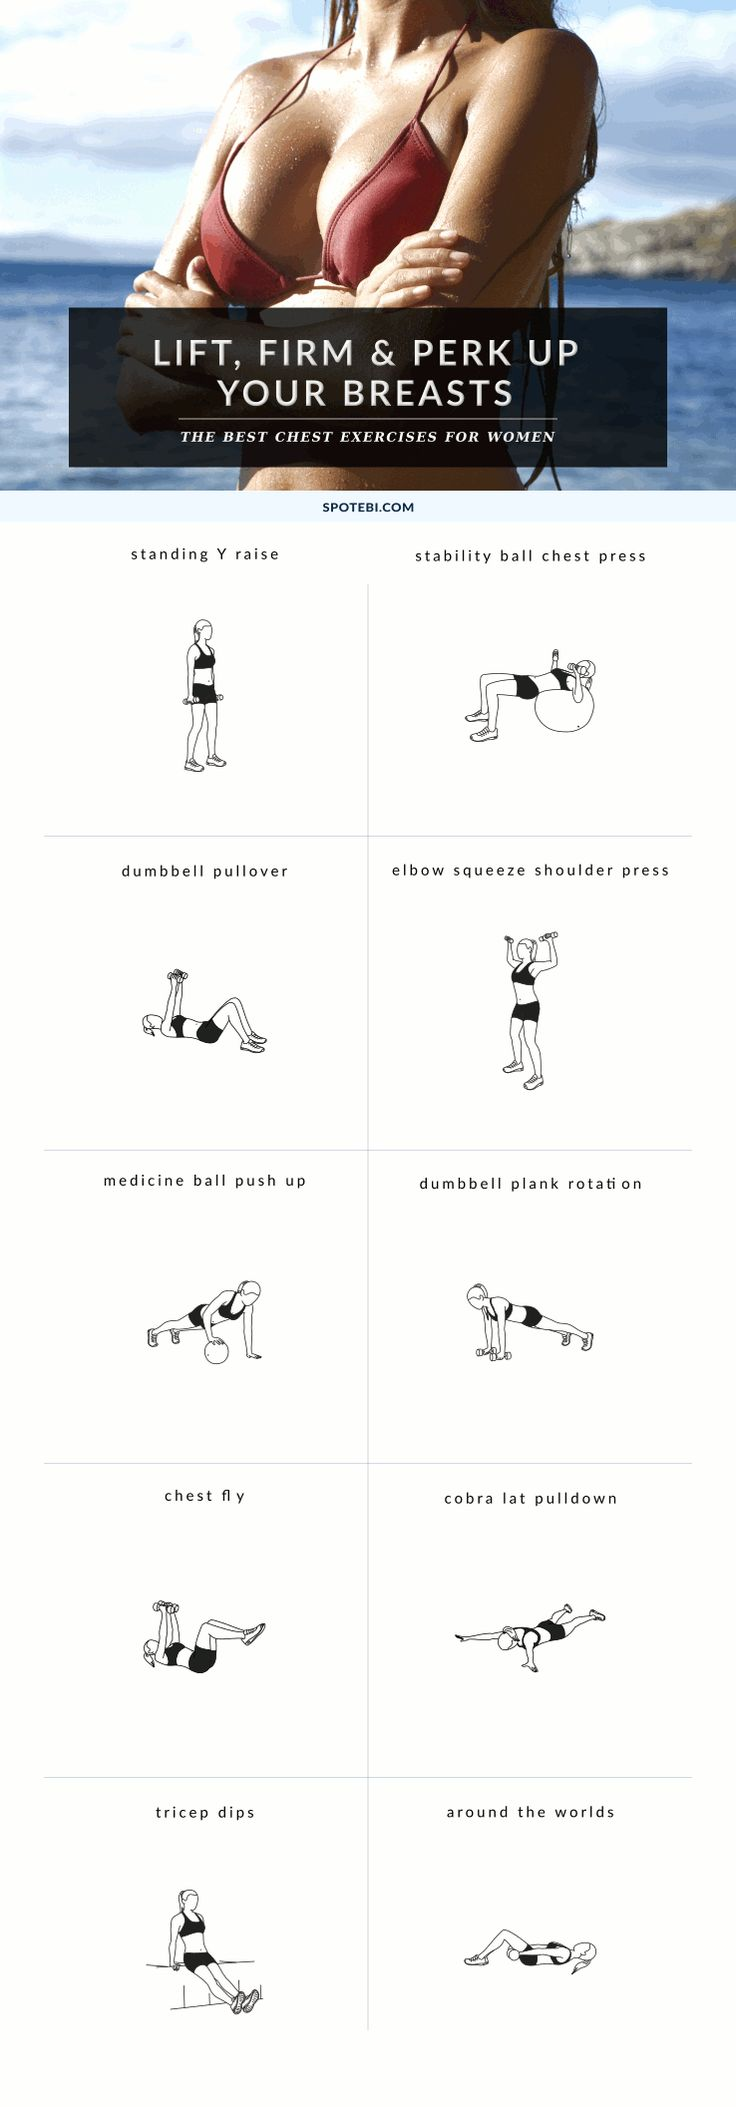 Try these 10 chest exercises to give your bust line a lift and make your breasts appear bigger and perkier, the natural way!